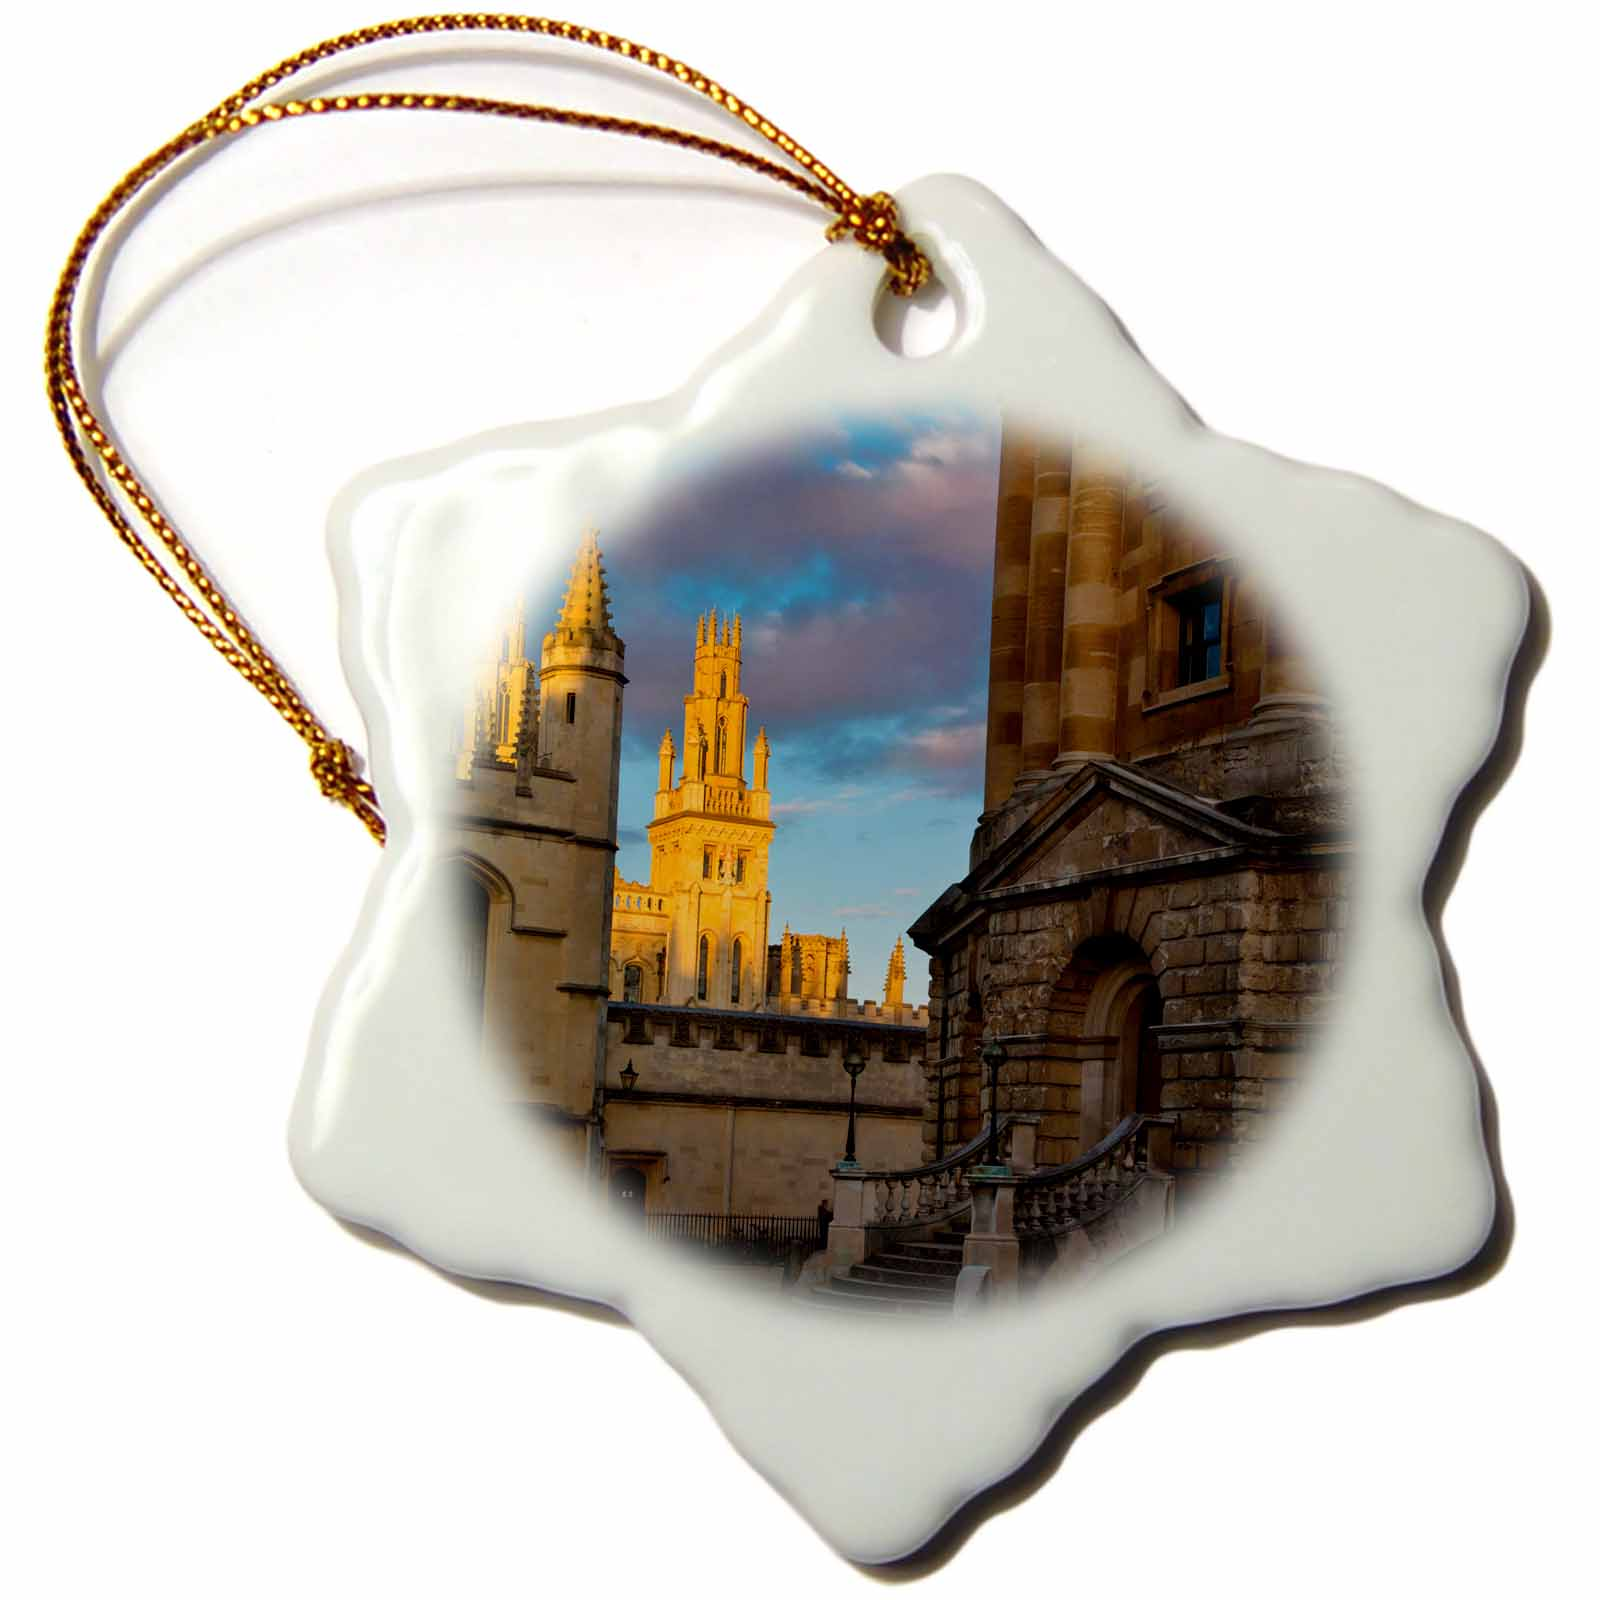 3dRose Radcliffe Camera and the towers of All Souls College, Oxford, England - Snowflake Ornament, 3-inch